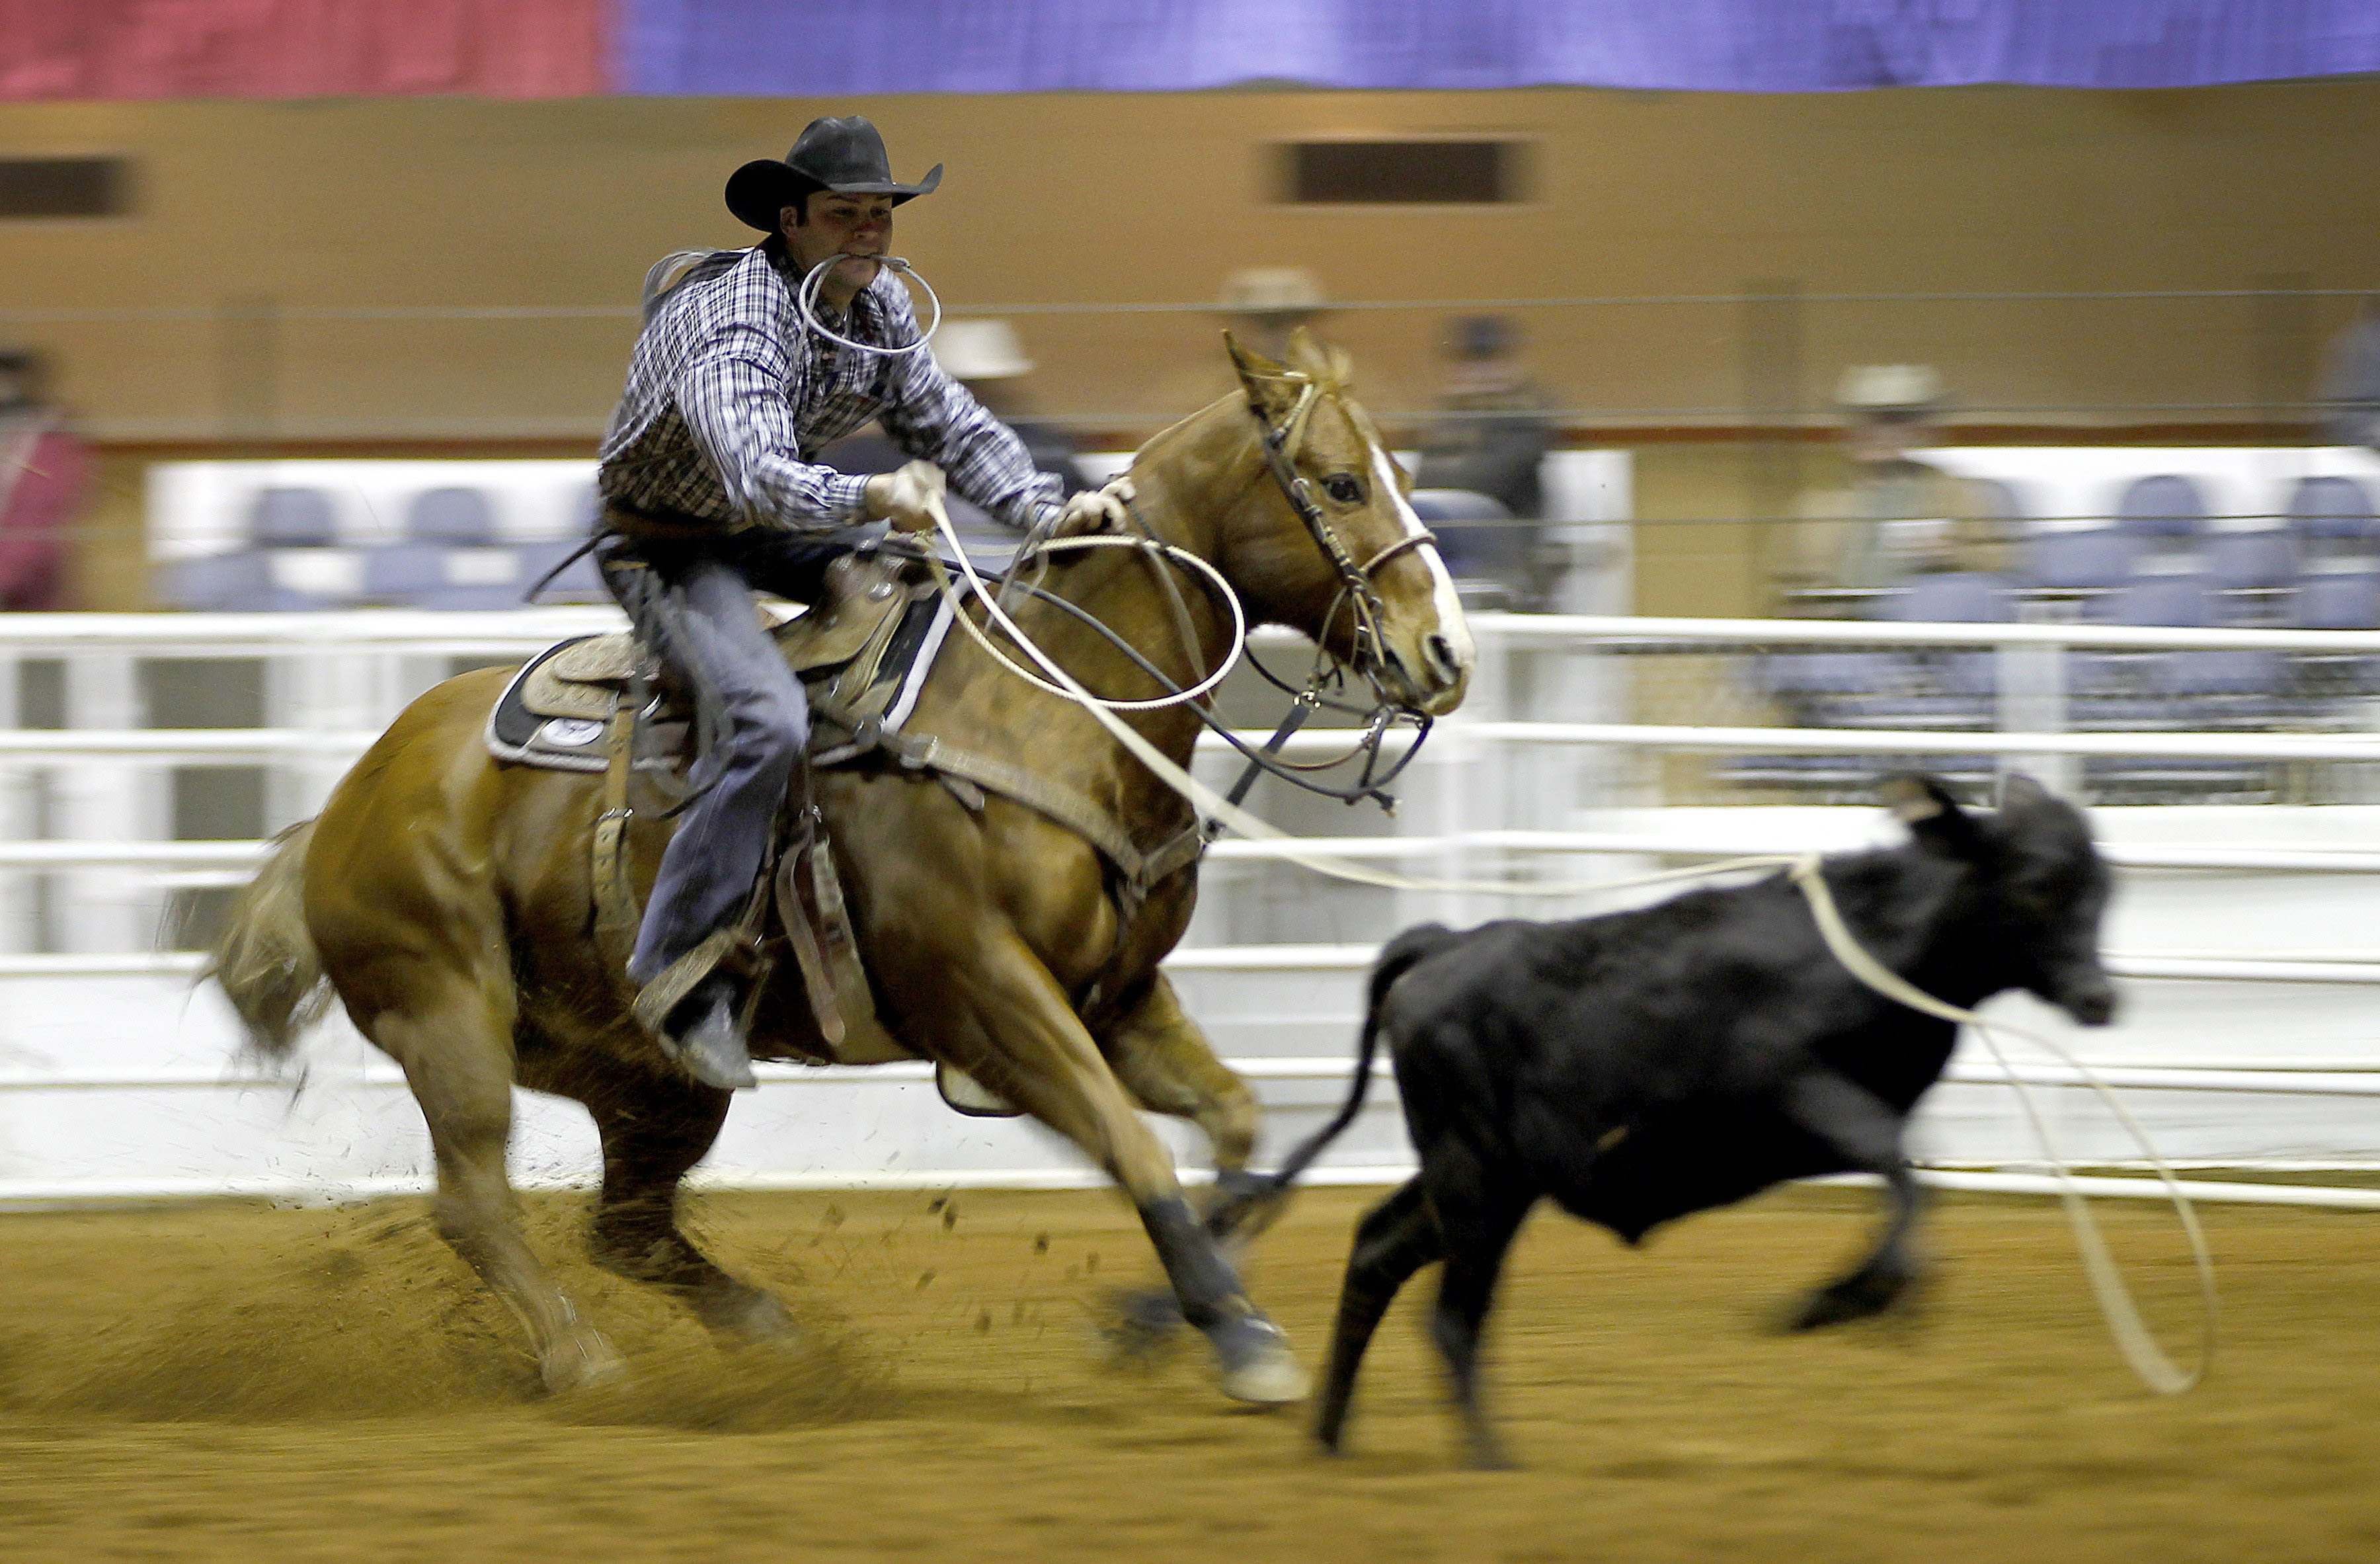 Prca Xtreme Bull Competition Comes To Toledo The Blade